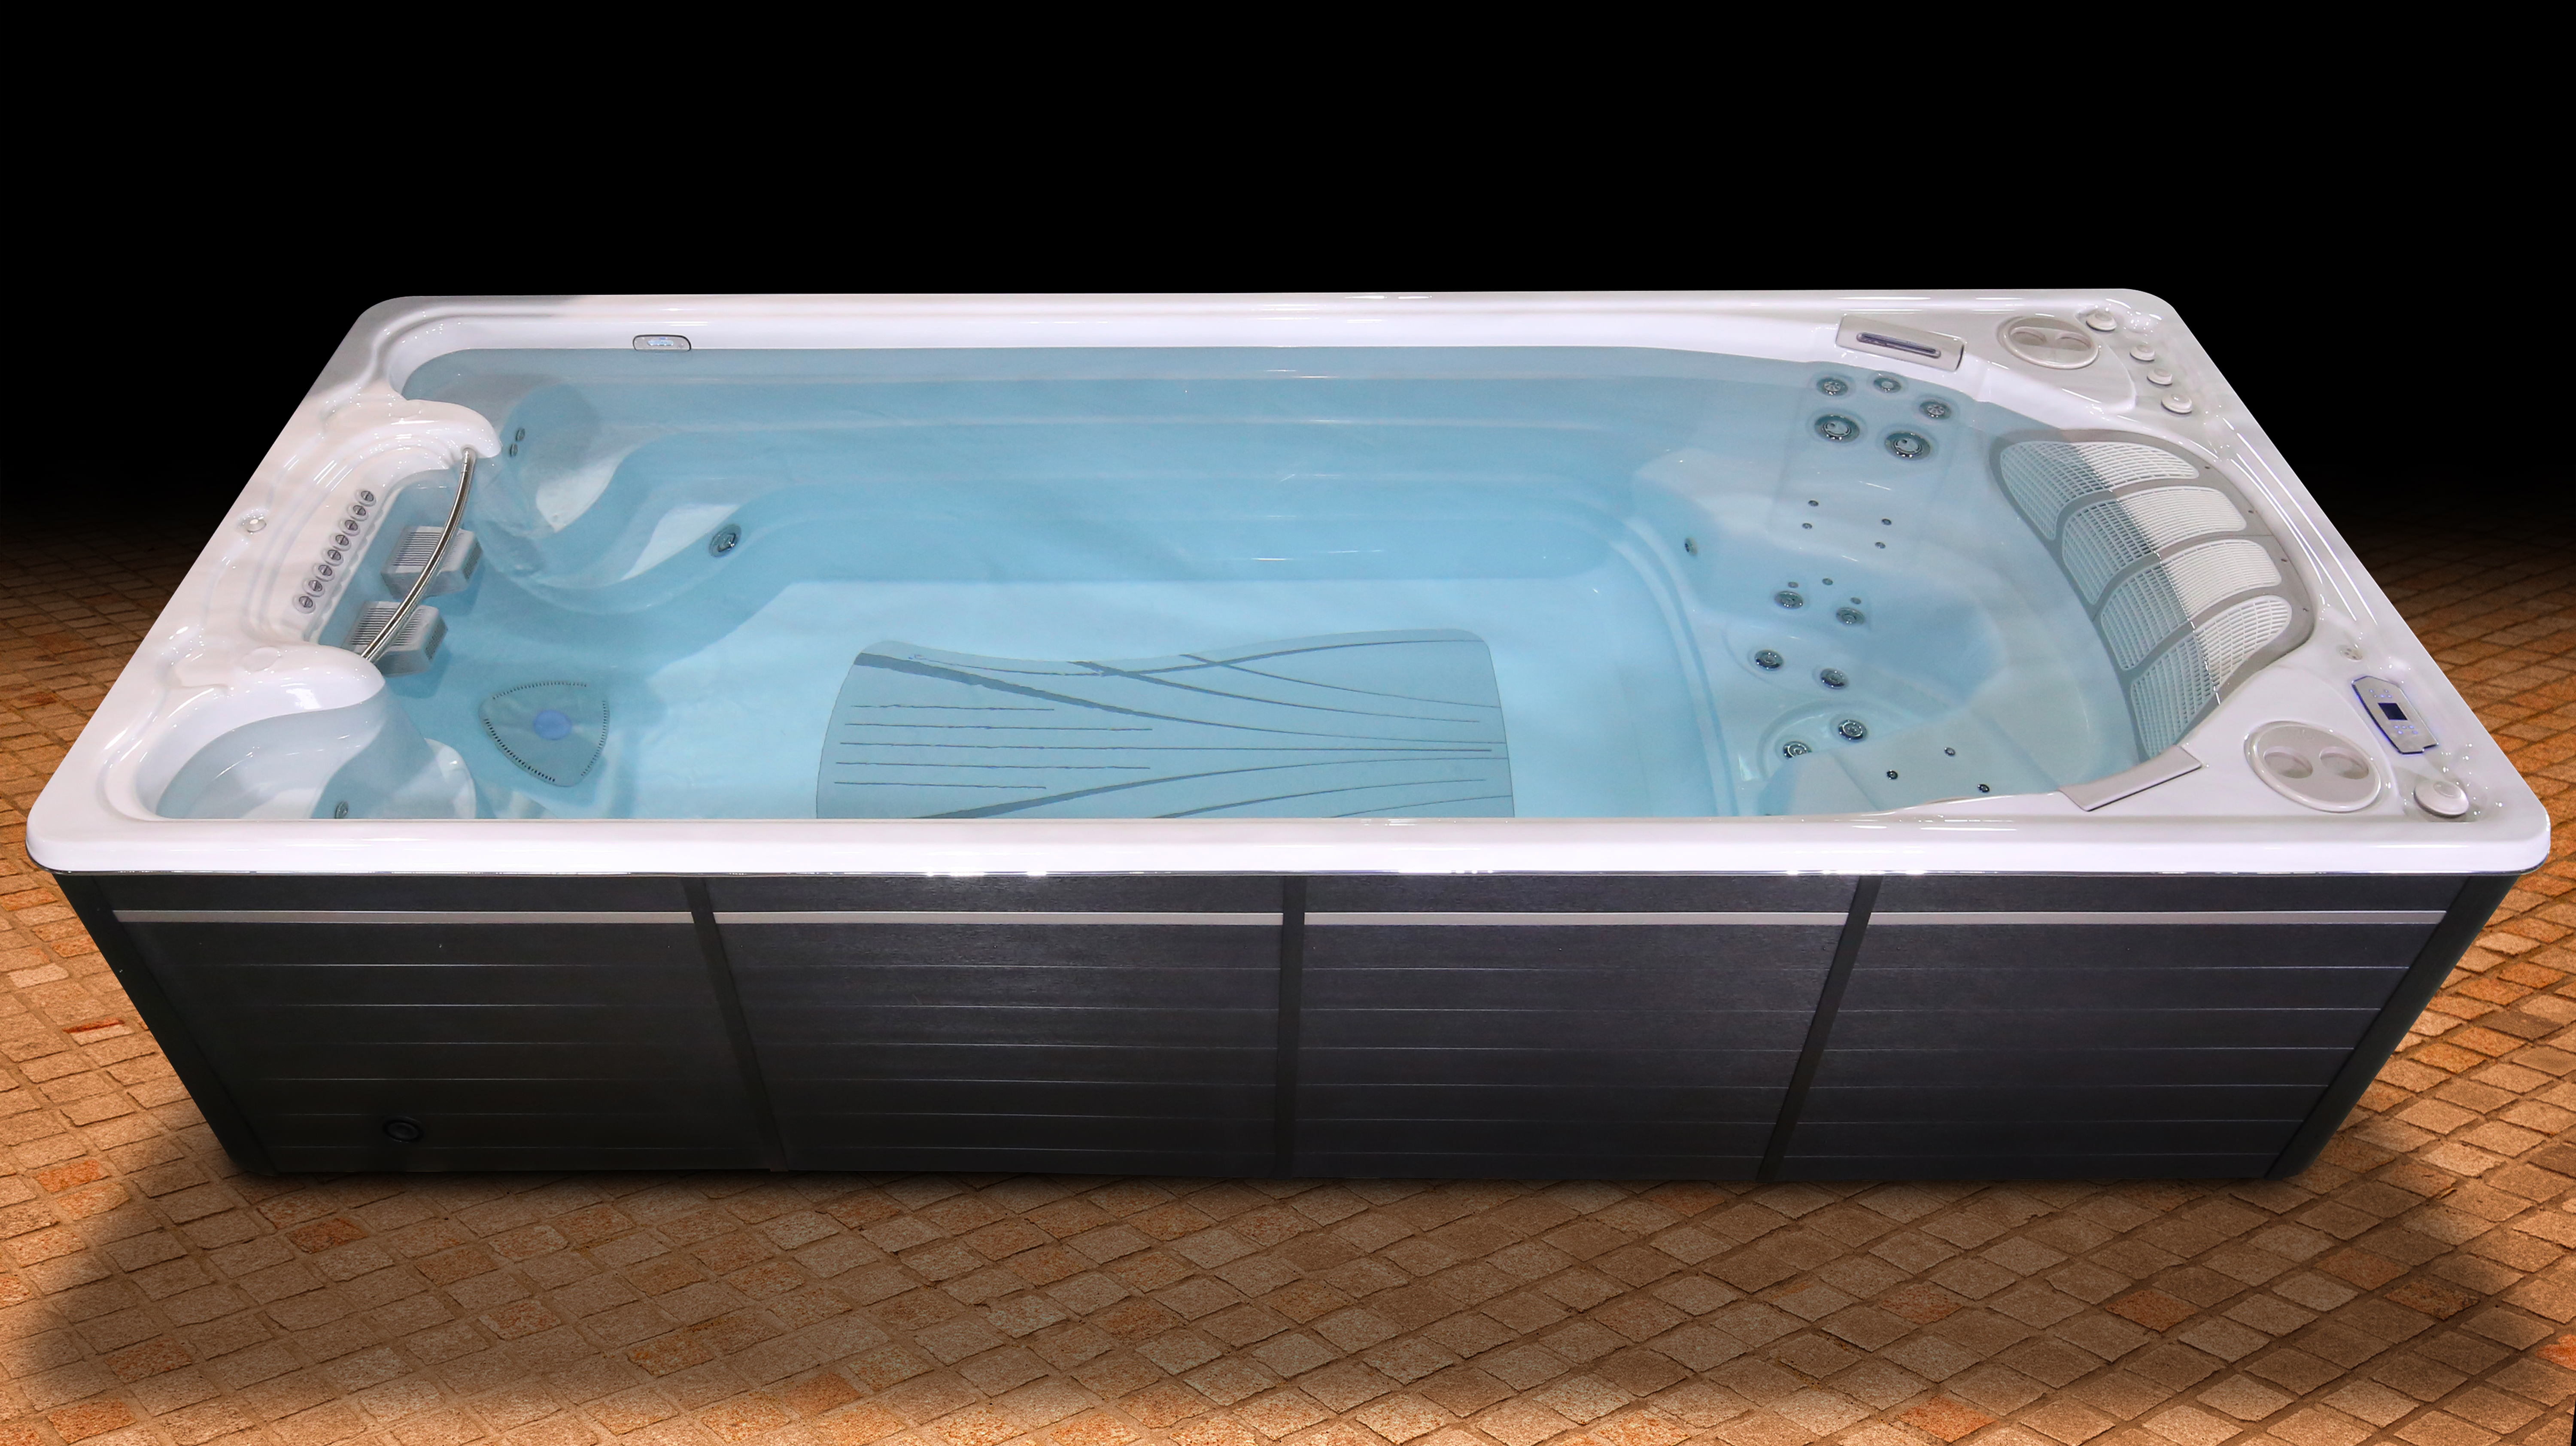 hot idees et cover accessories lifters spa jacuzzi kit the vic portland en avec tub black tubs guy